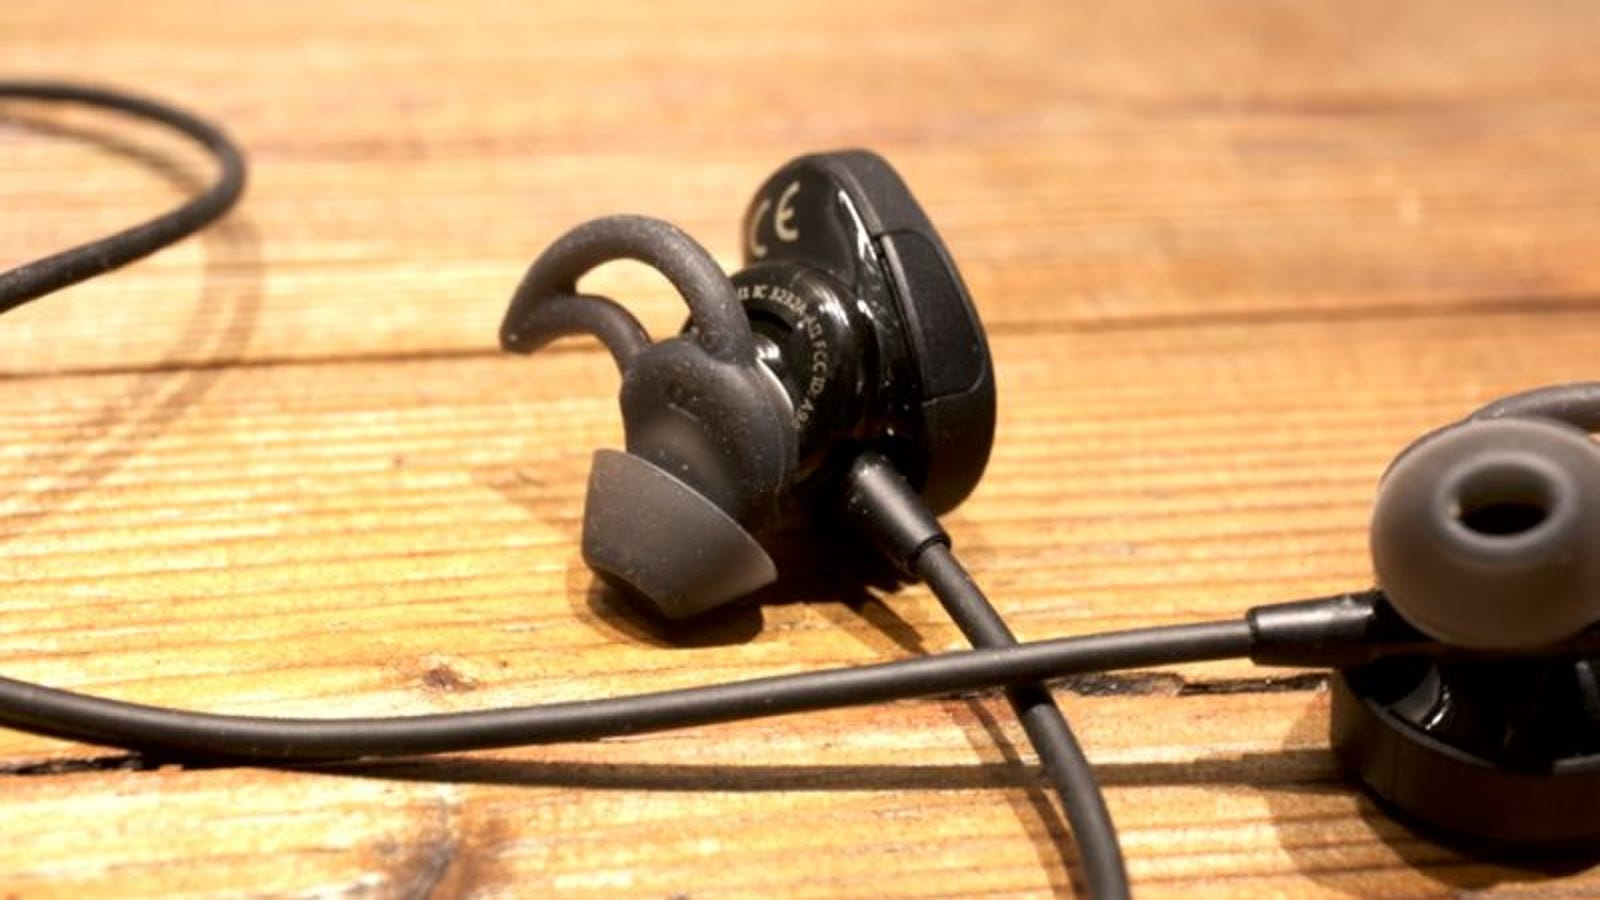 osha approved earbuds bluetooth - Bose SoundSport Wireless Users Are Reporting Problems With 'Heavy Sweat' [UPDATE]